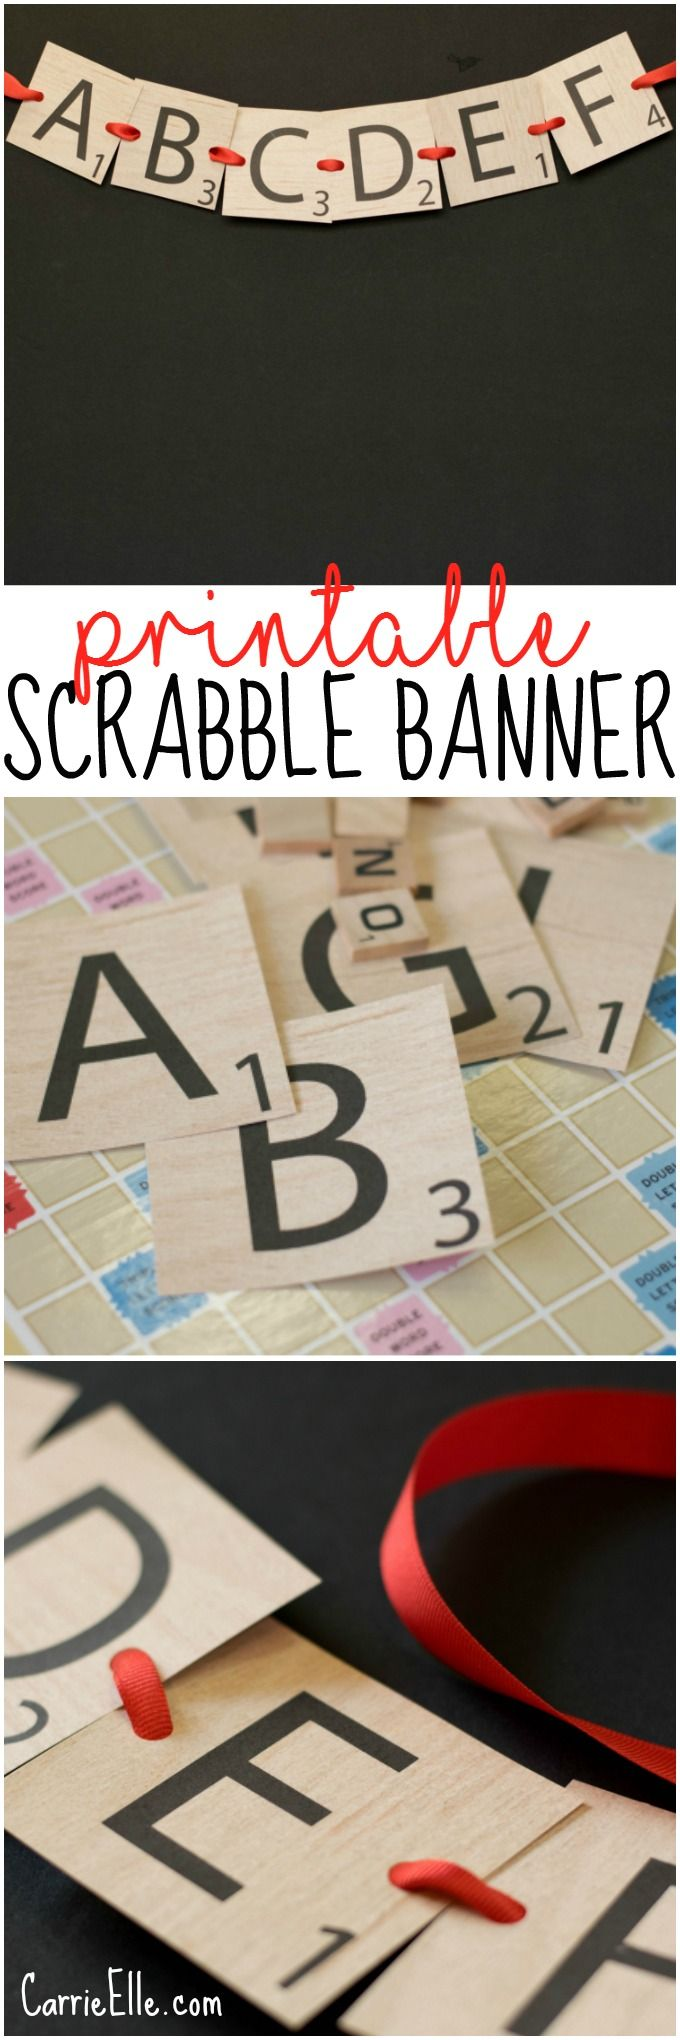 This SCRABBLE Letter Printable Banner is so fun - and you can download it for free!